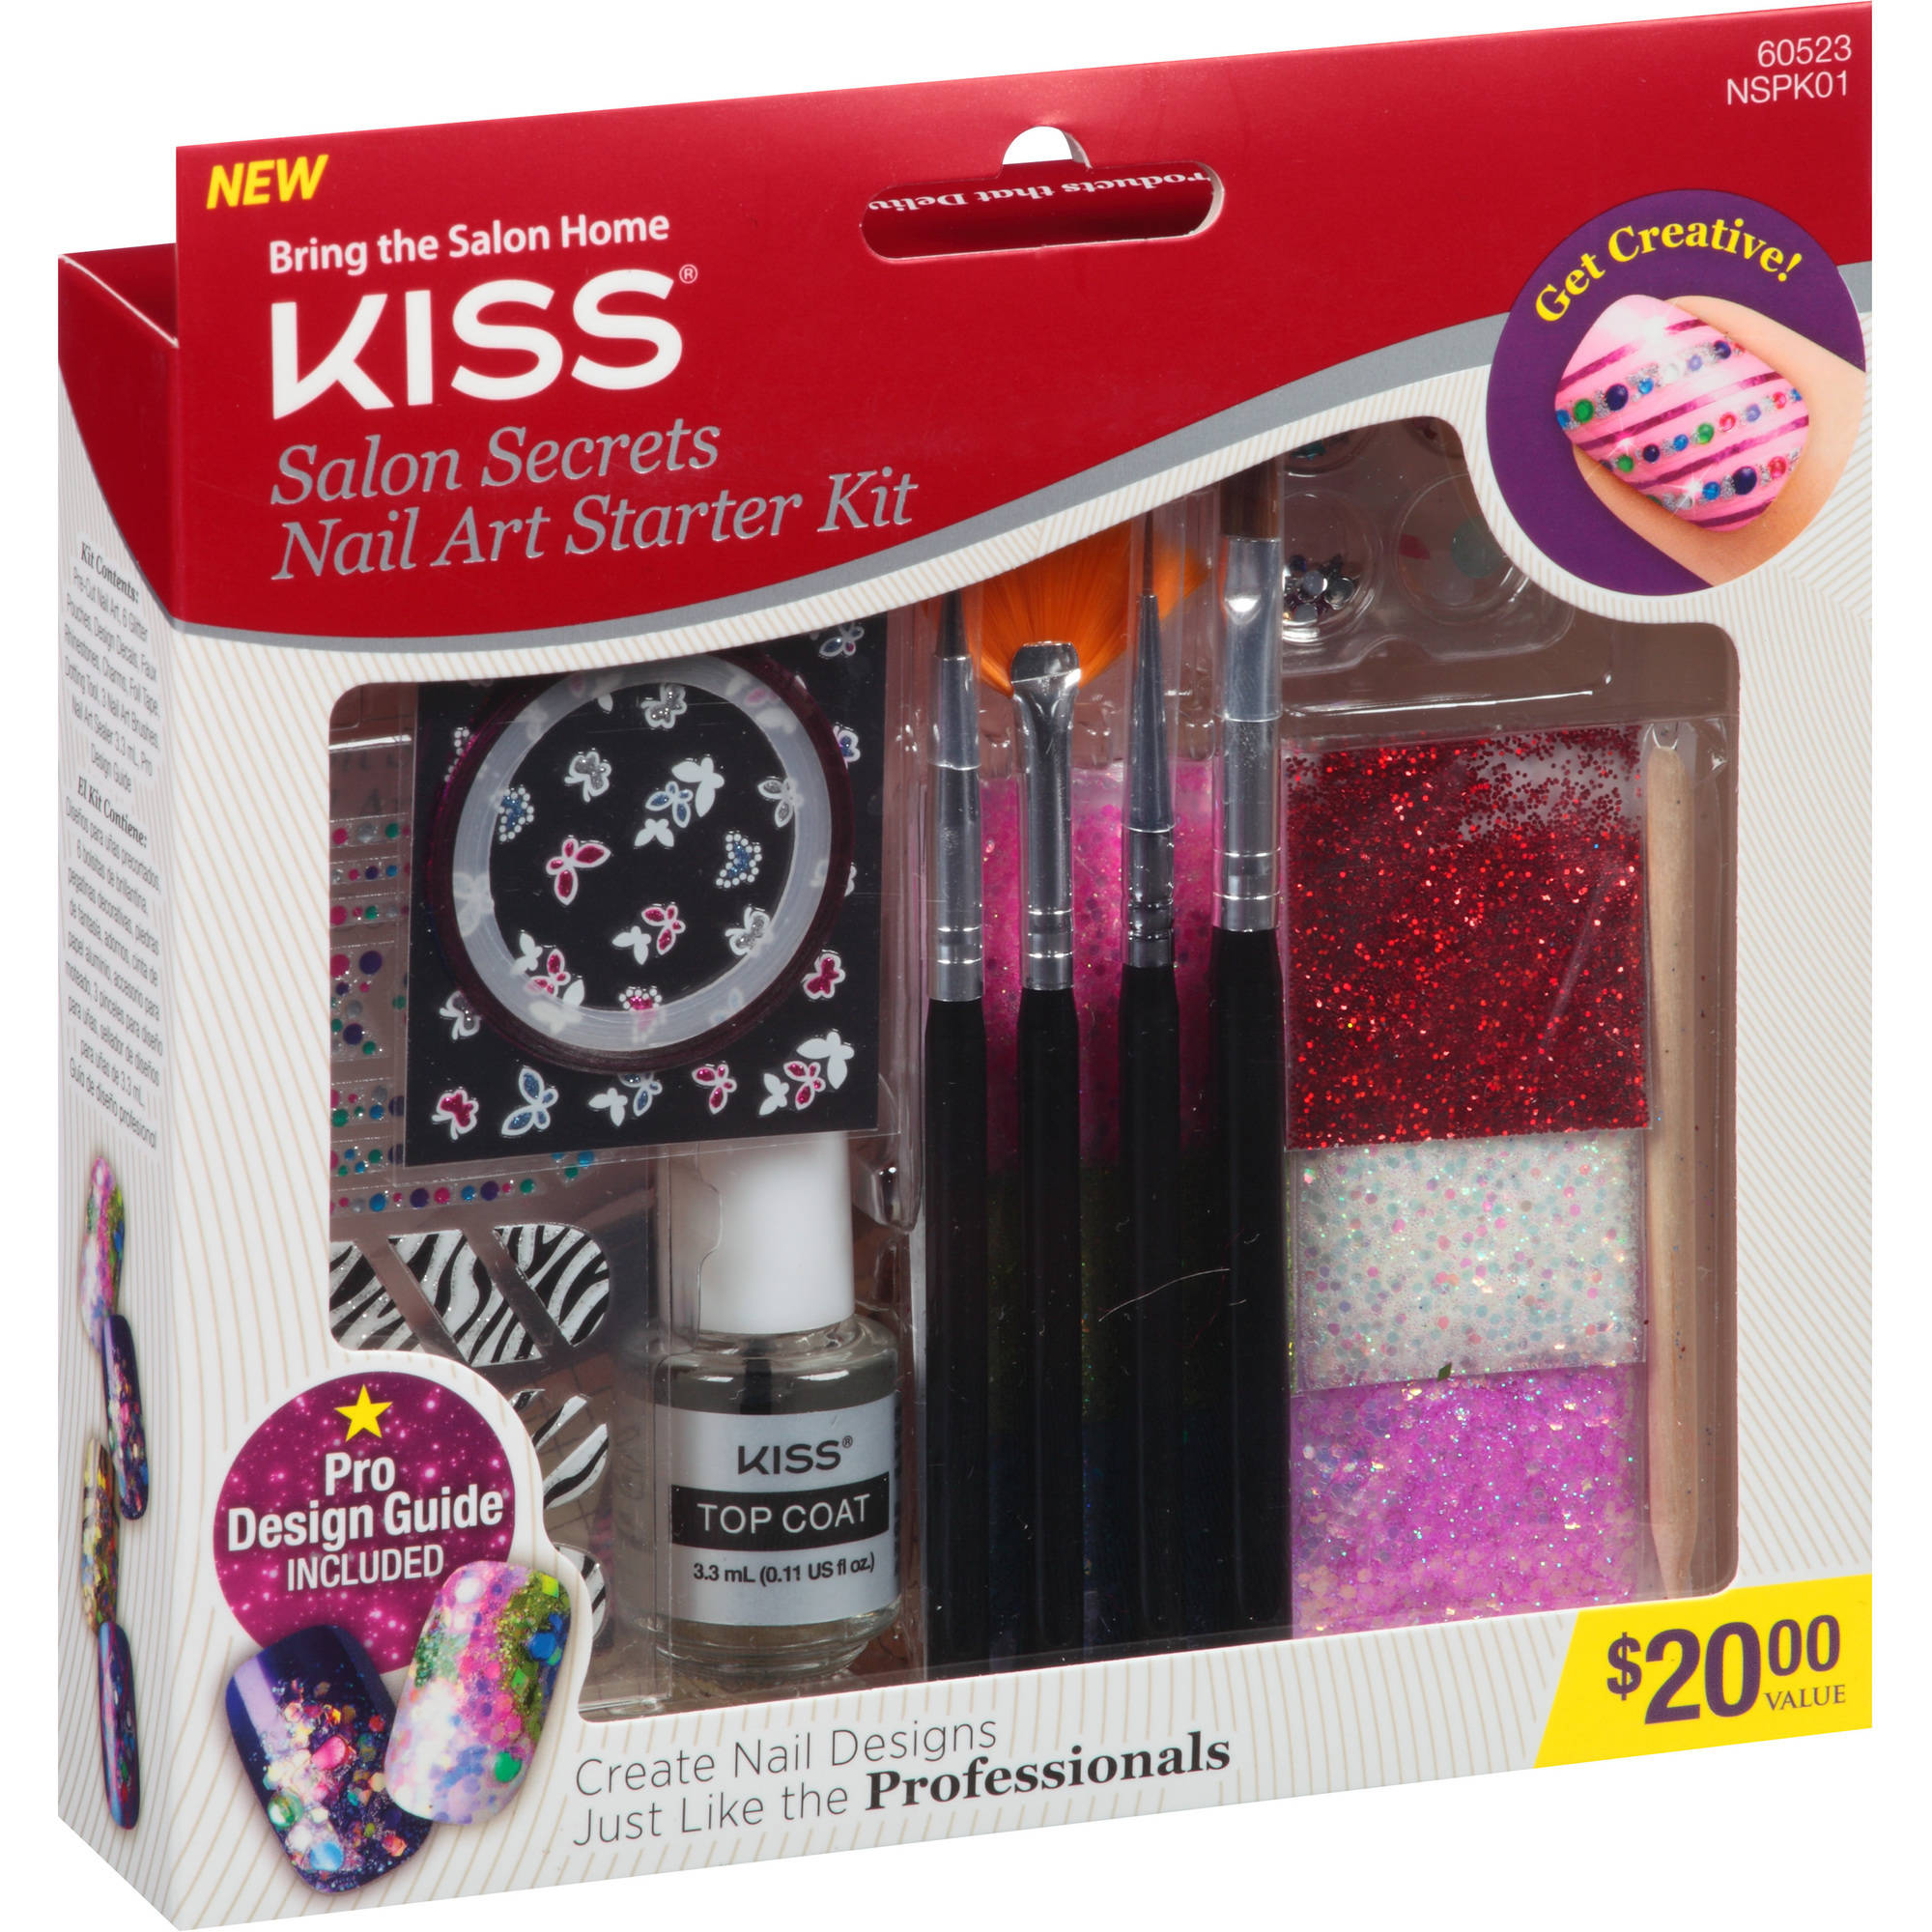 Kiss Salon Secrets Nail Art Starter Kit, 60523, 17 piece